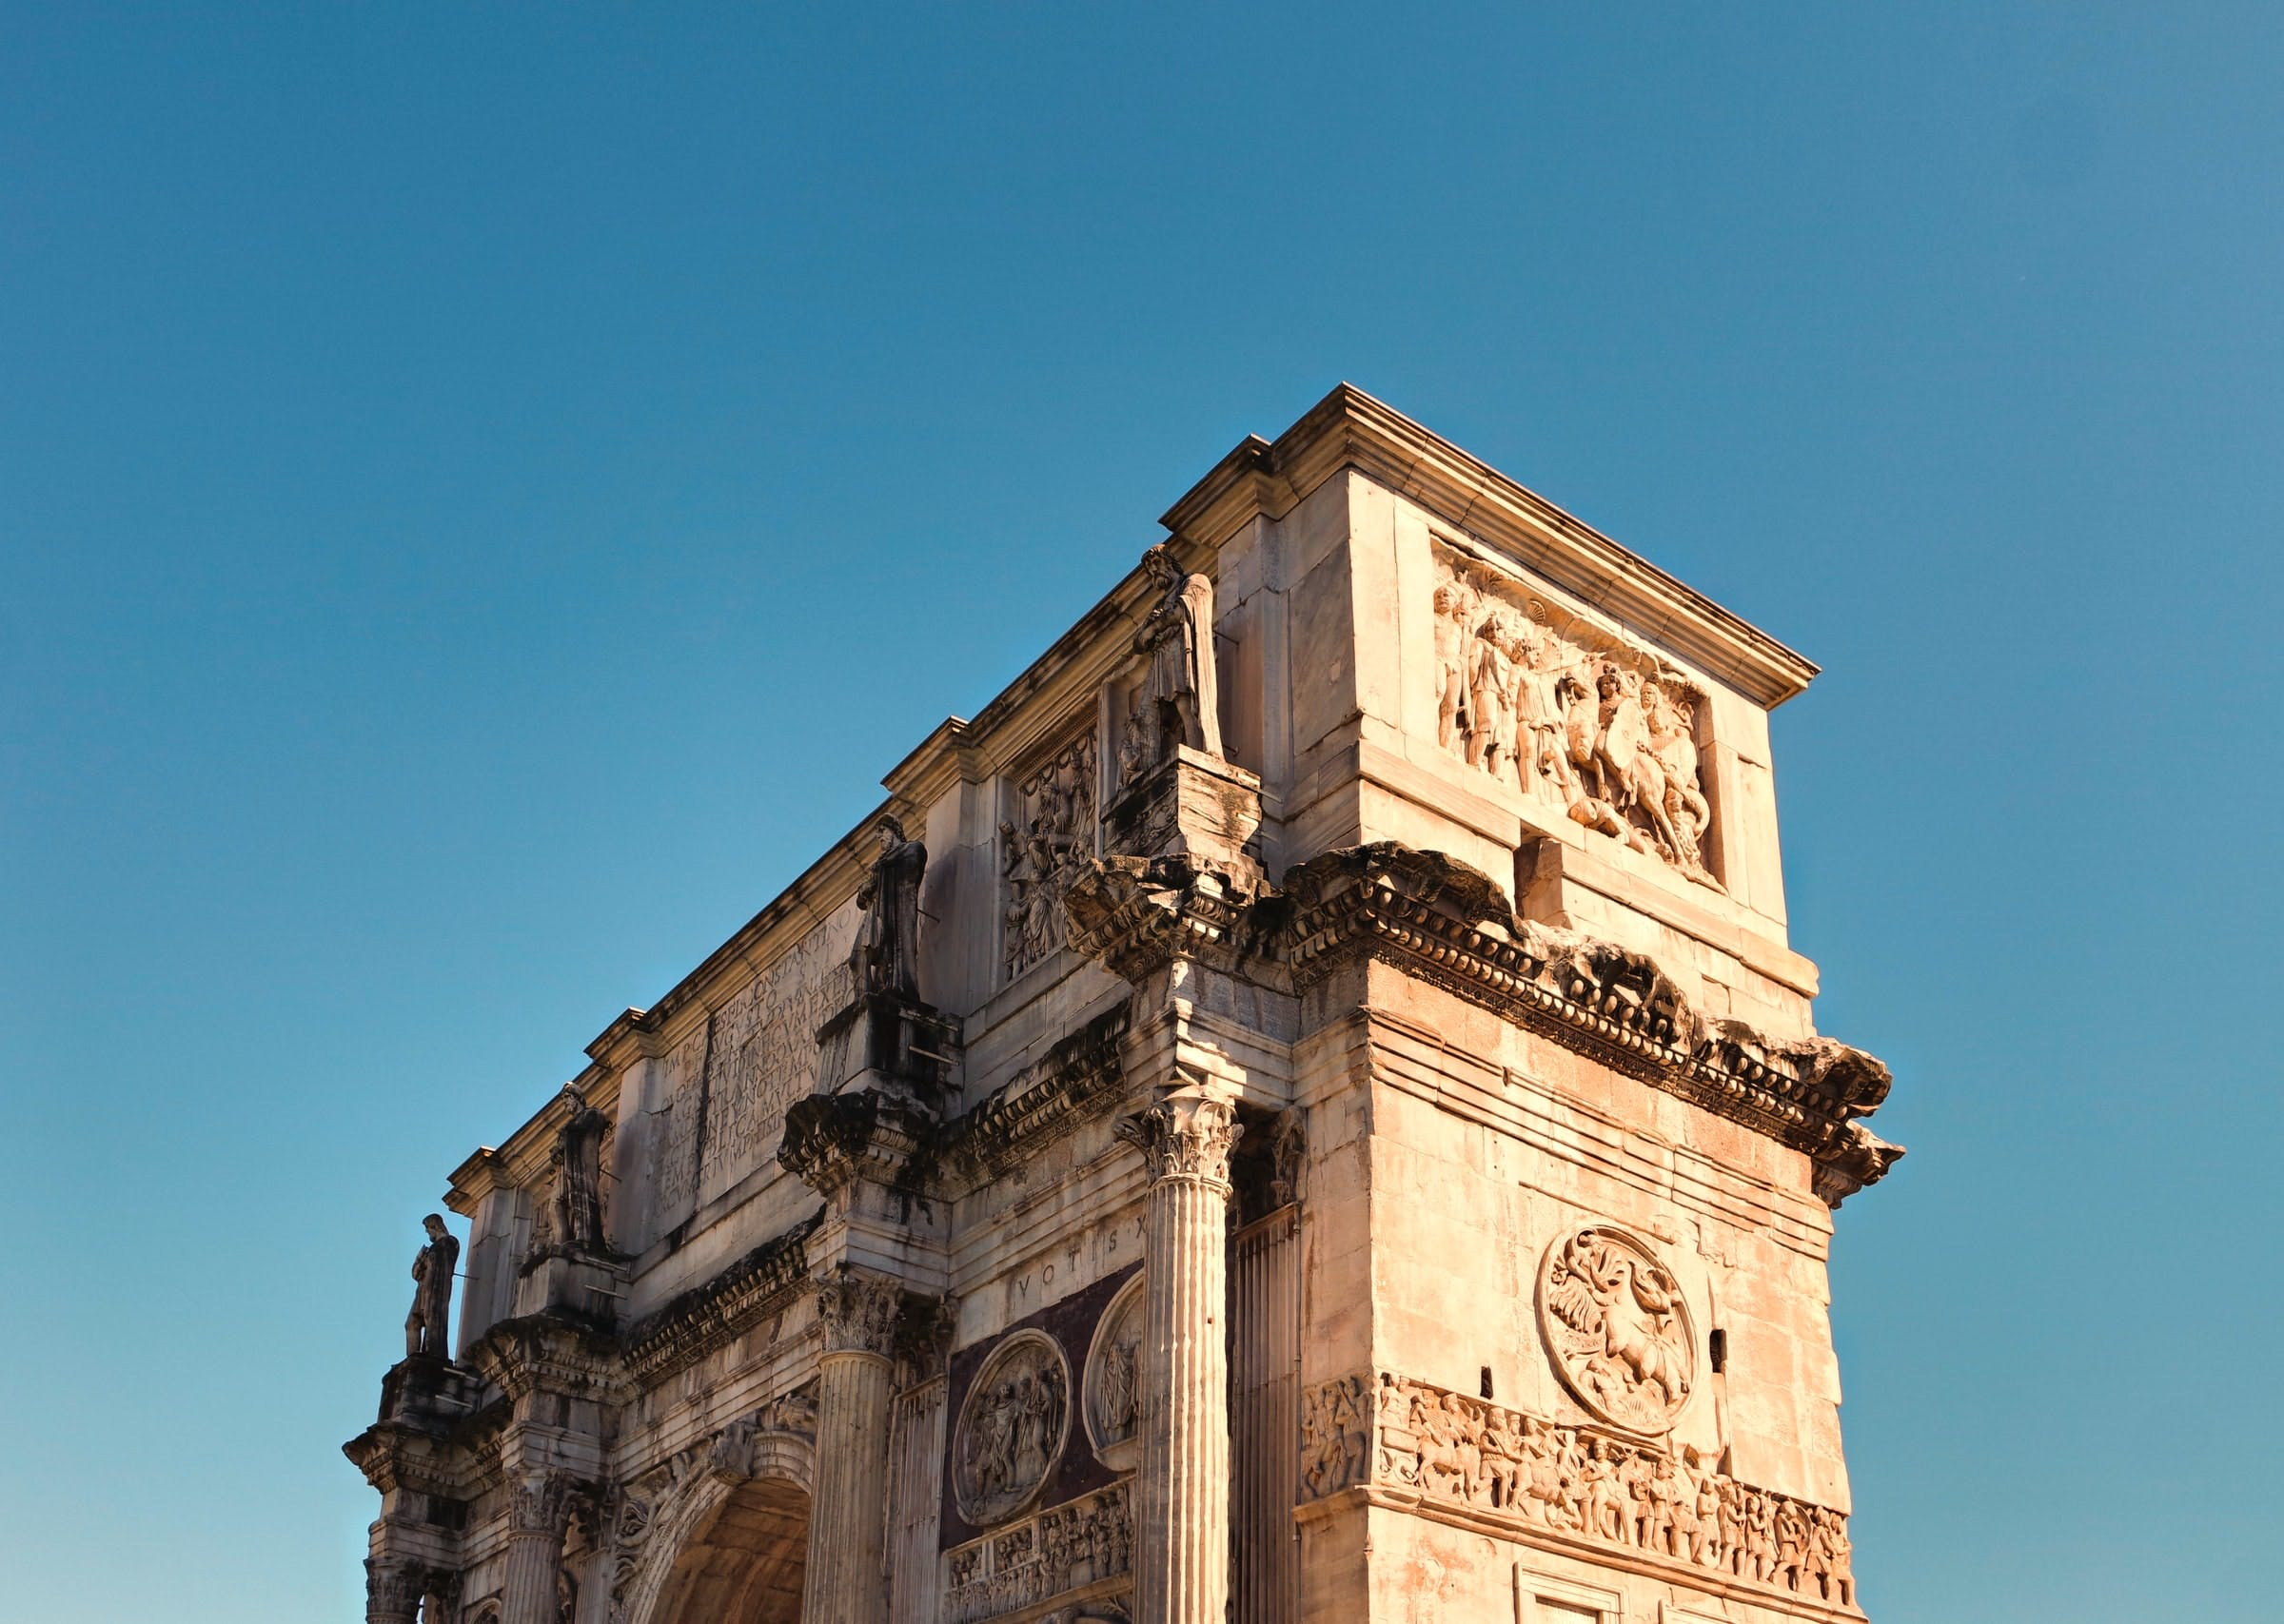 The Arch of Constantine in Rome is a notable example of Spolia, holding several fragments from periods of earlier emperors.